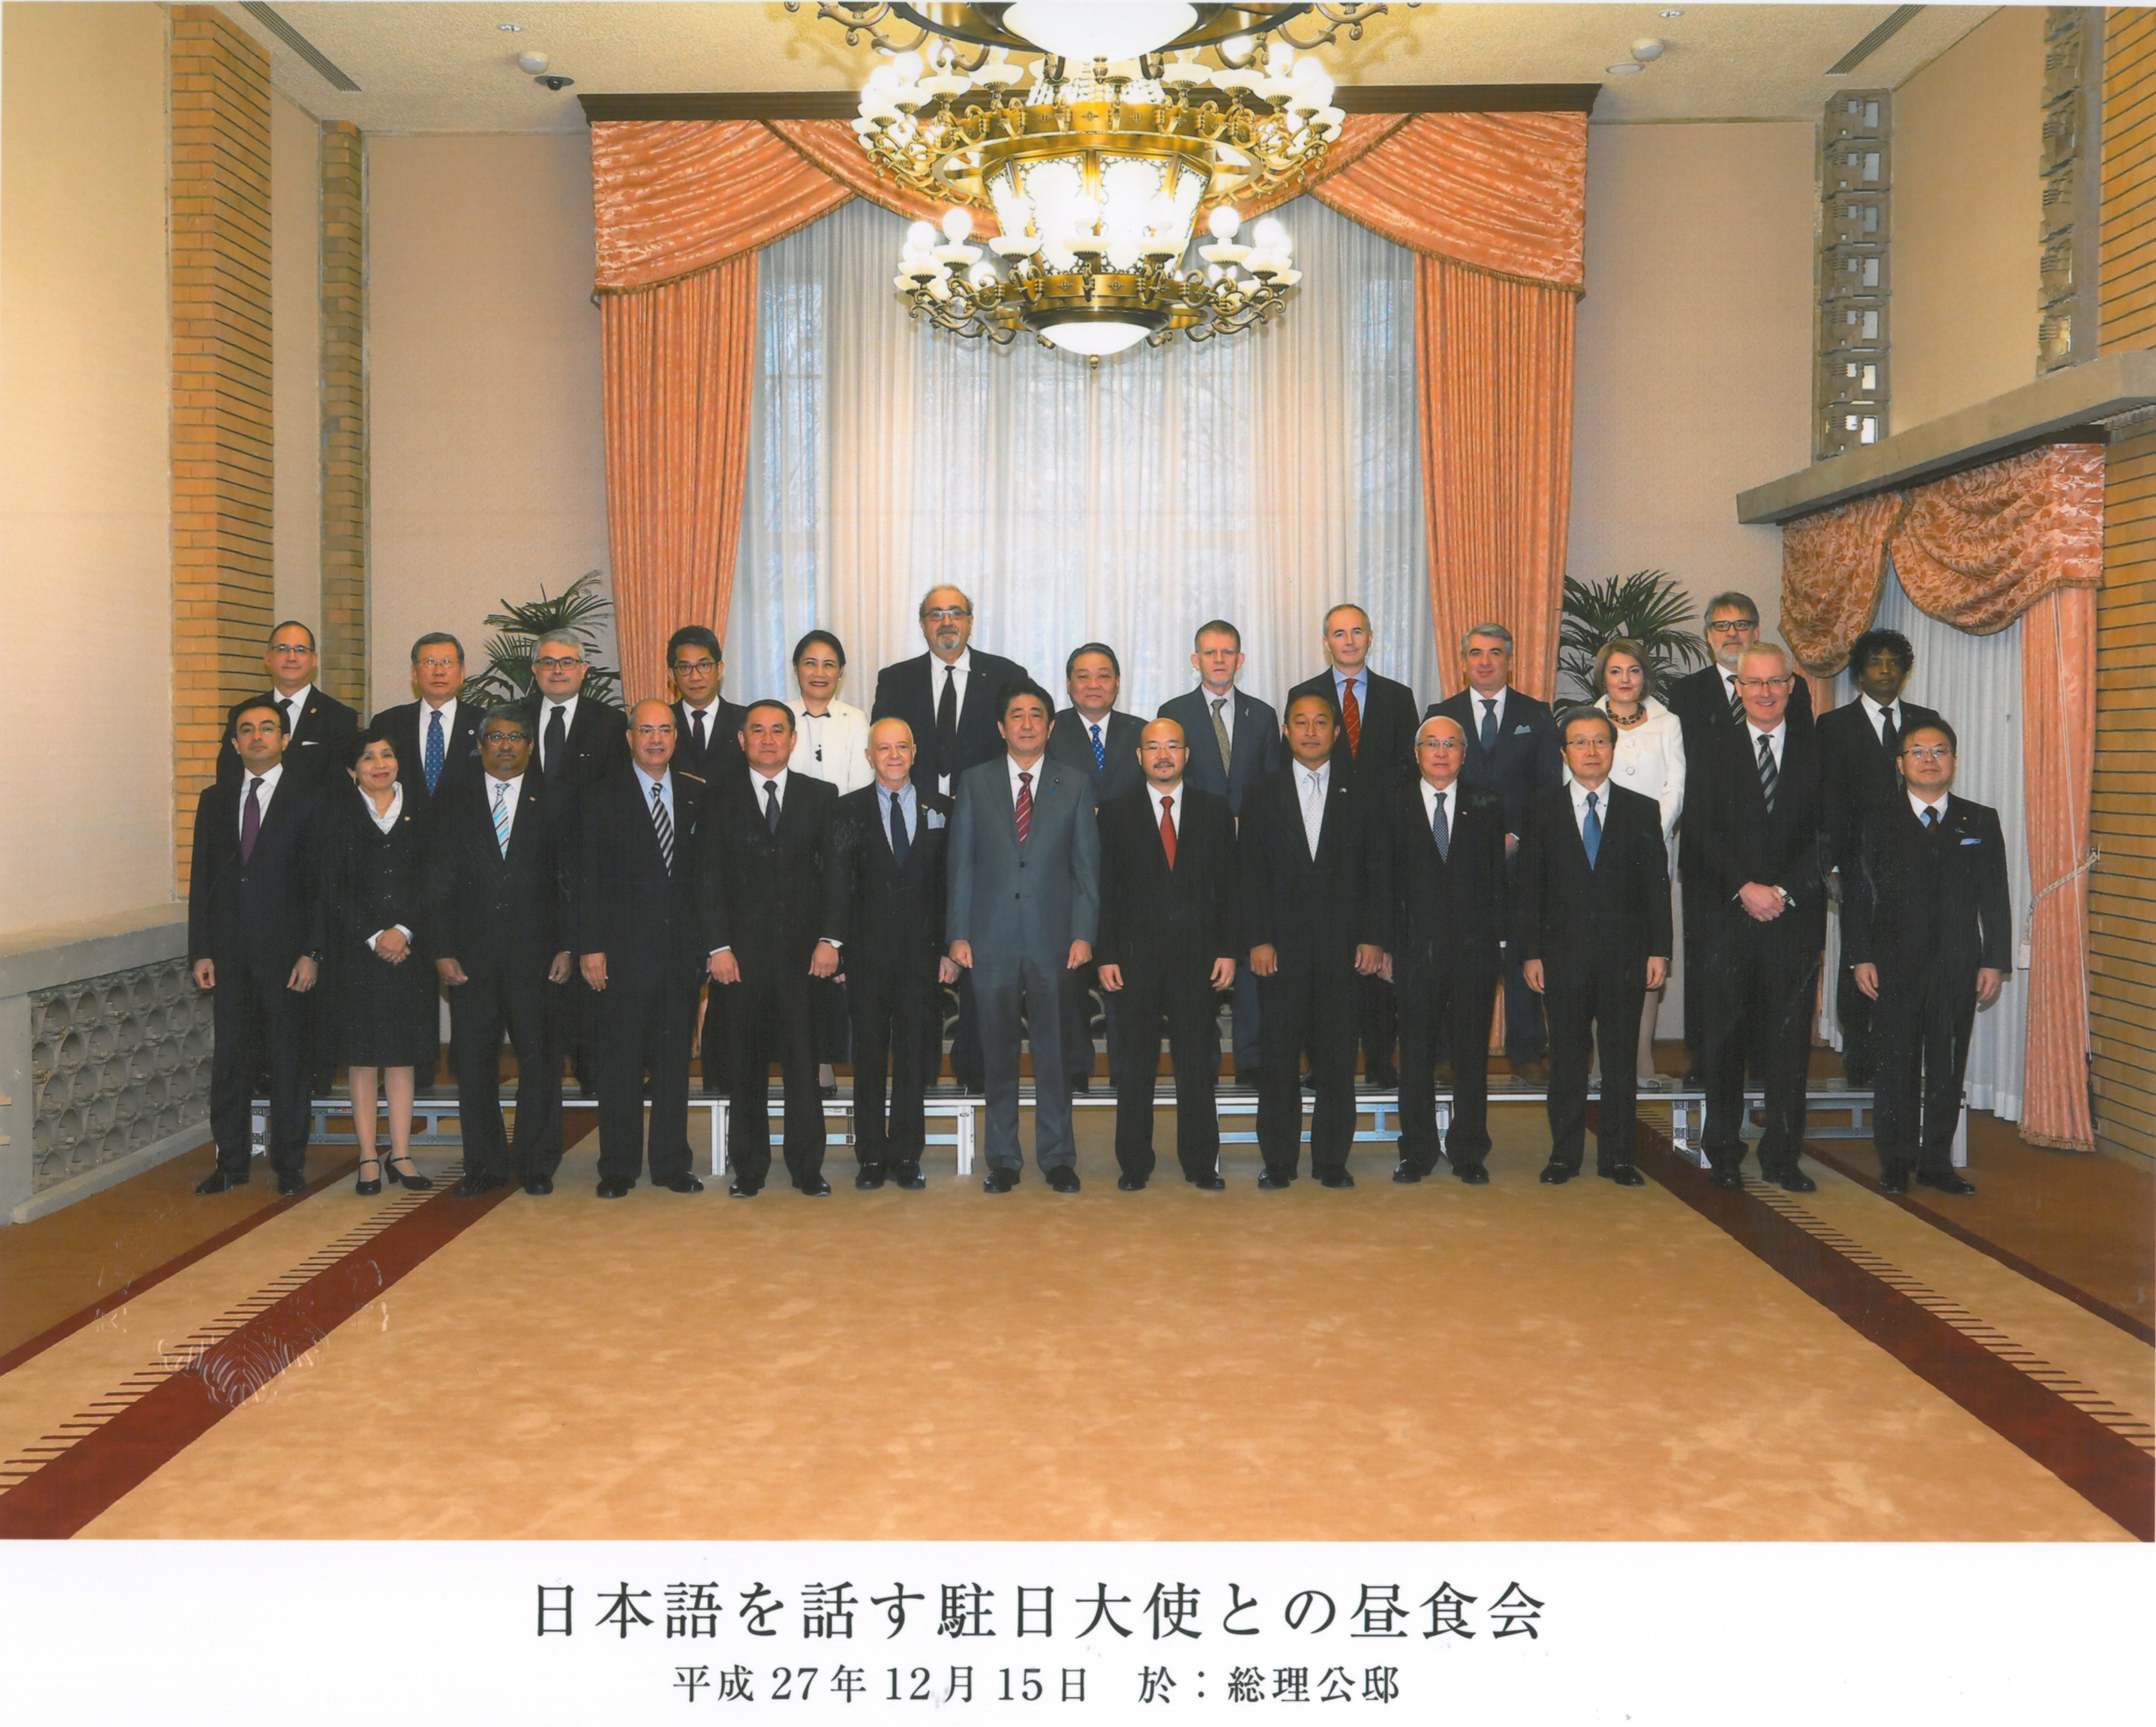 Left in second row, H.E. Ritter N. Díaz, Ambassador of Panama in Japan, with H.E. Shinzo Abe, Prime Minister of Japan and Japanese-Speaking Ambassadors to Japan